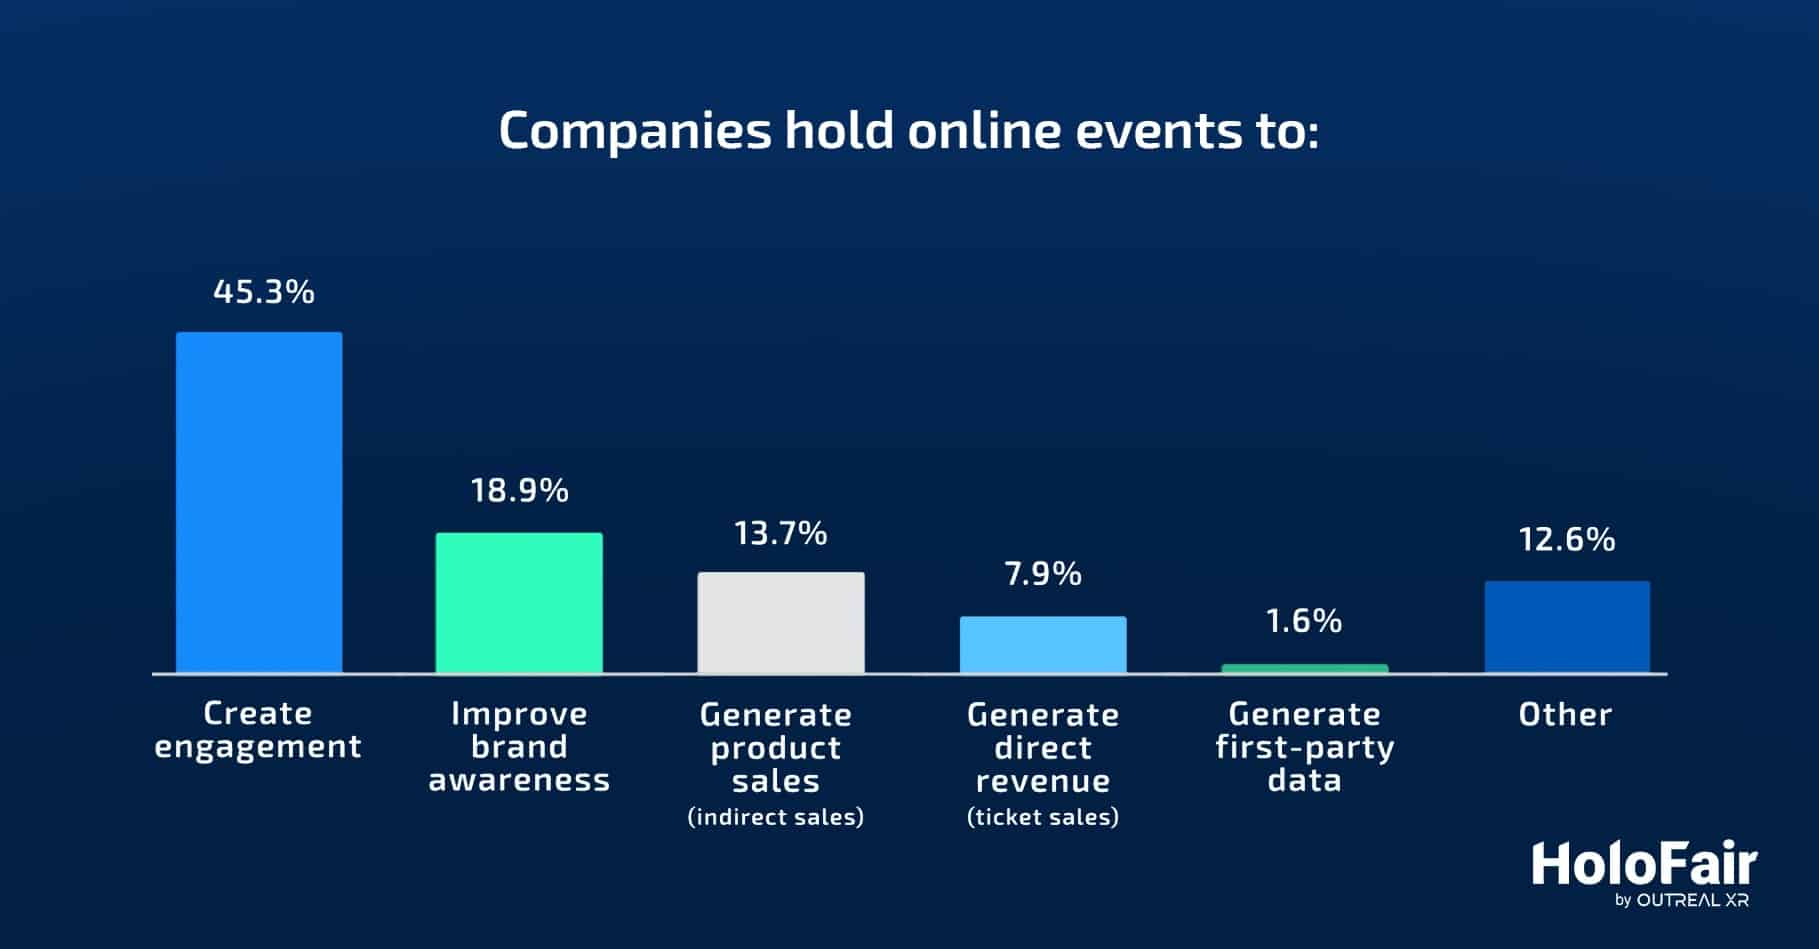 """<p>45% of companies host online events to generate engagement with their target audience, and 19% hold virtual events to increase brand awareness. Respondents: 100 global companies such as Nestlé, HP, Volkswagen & LinkedIn <a href=""""https://s3.amazonaws.com/media.mediapost.com/uploads/StateOfVirtualEvents2021.pdf"""" target=""""_blank"""" rel=""""noopener"""">(source)</a></p>"""